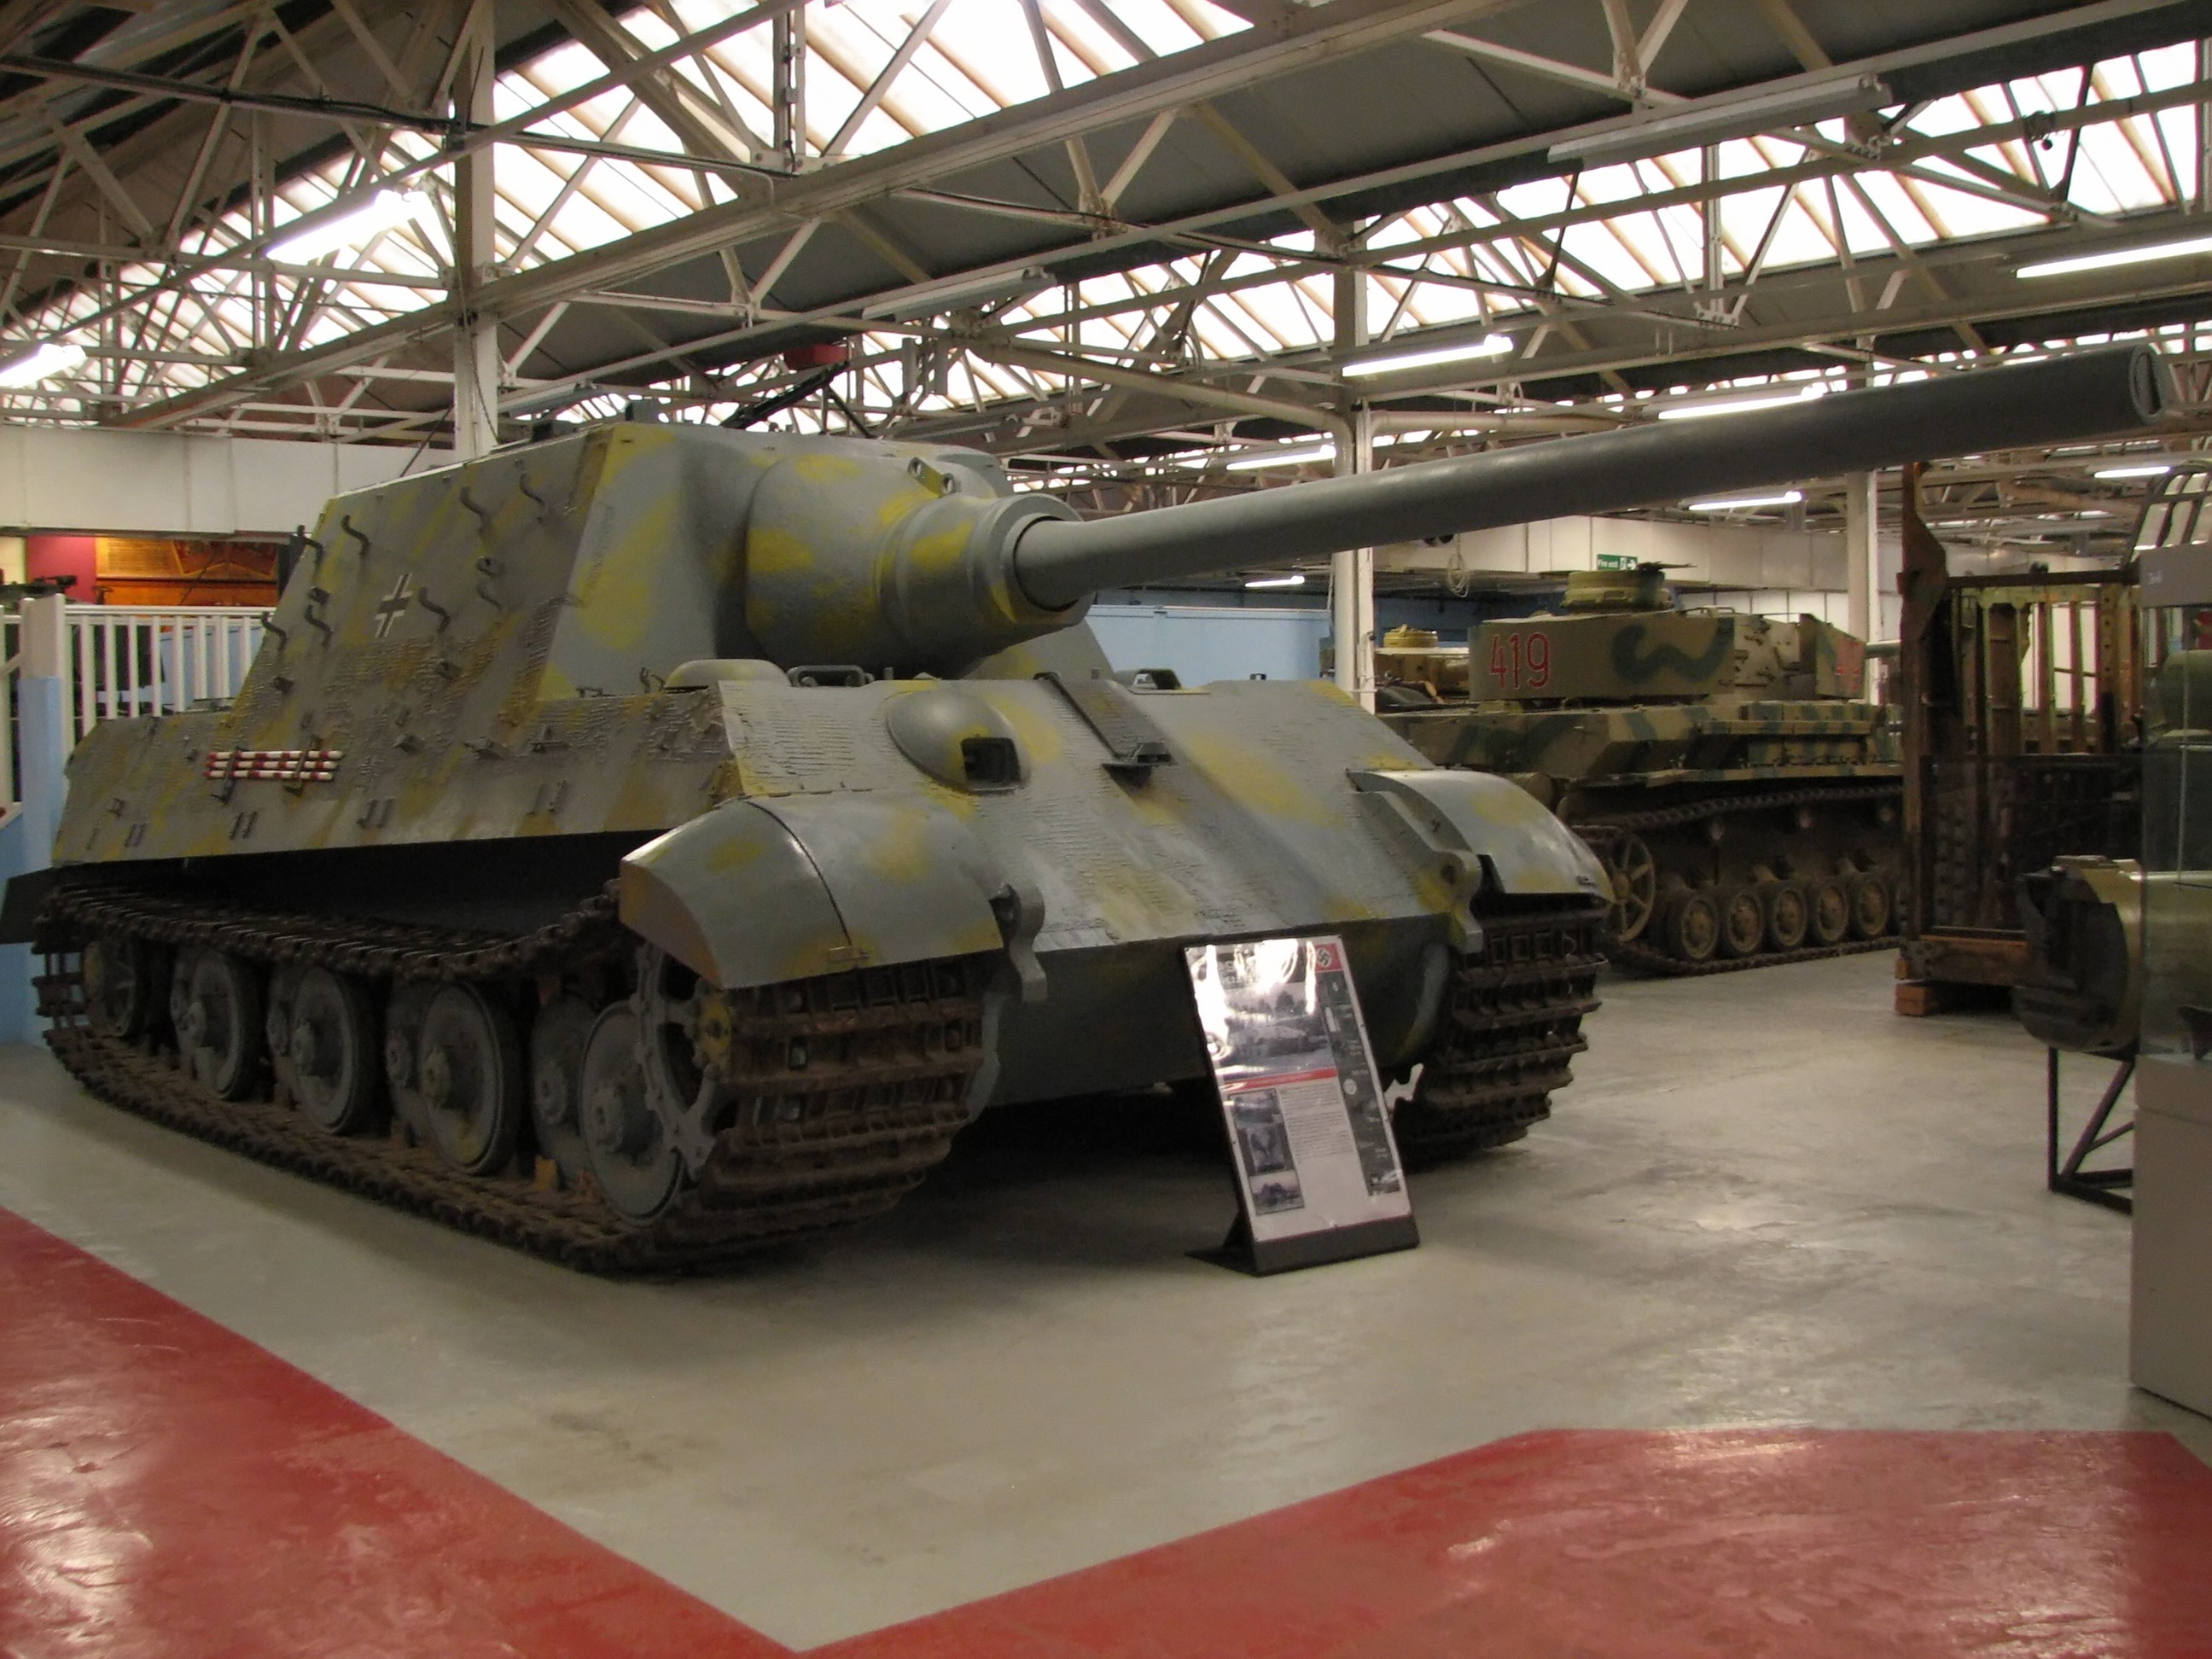 Panzerjäger Tiger Ausf. B: 71.7 tonnes, yes we can!